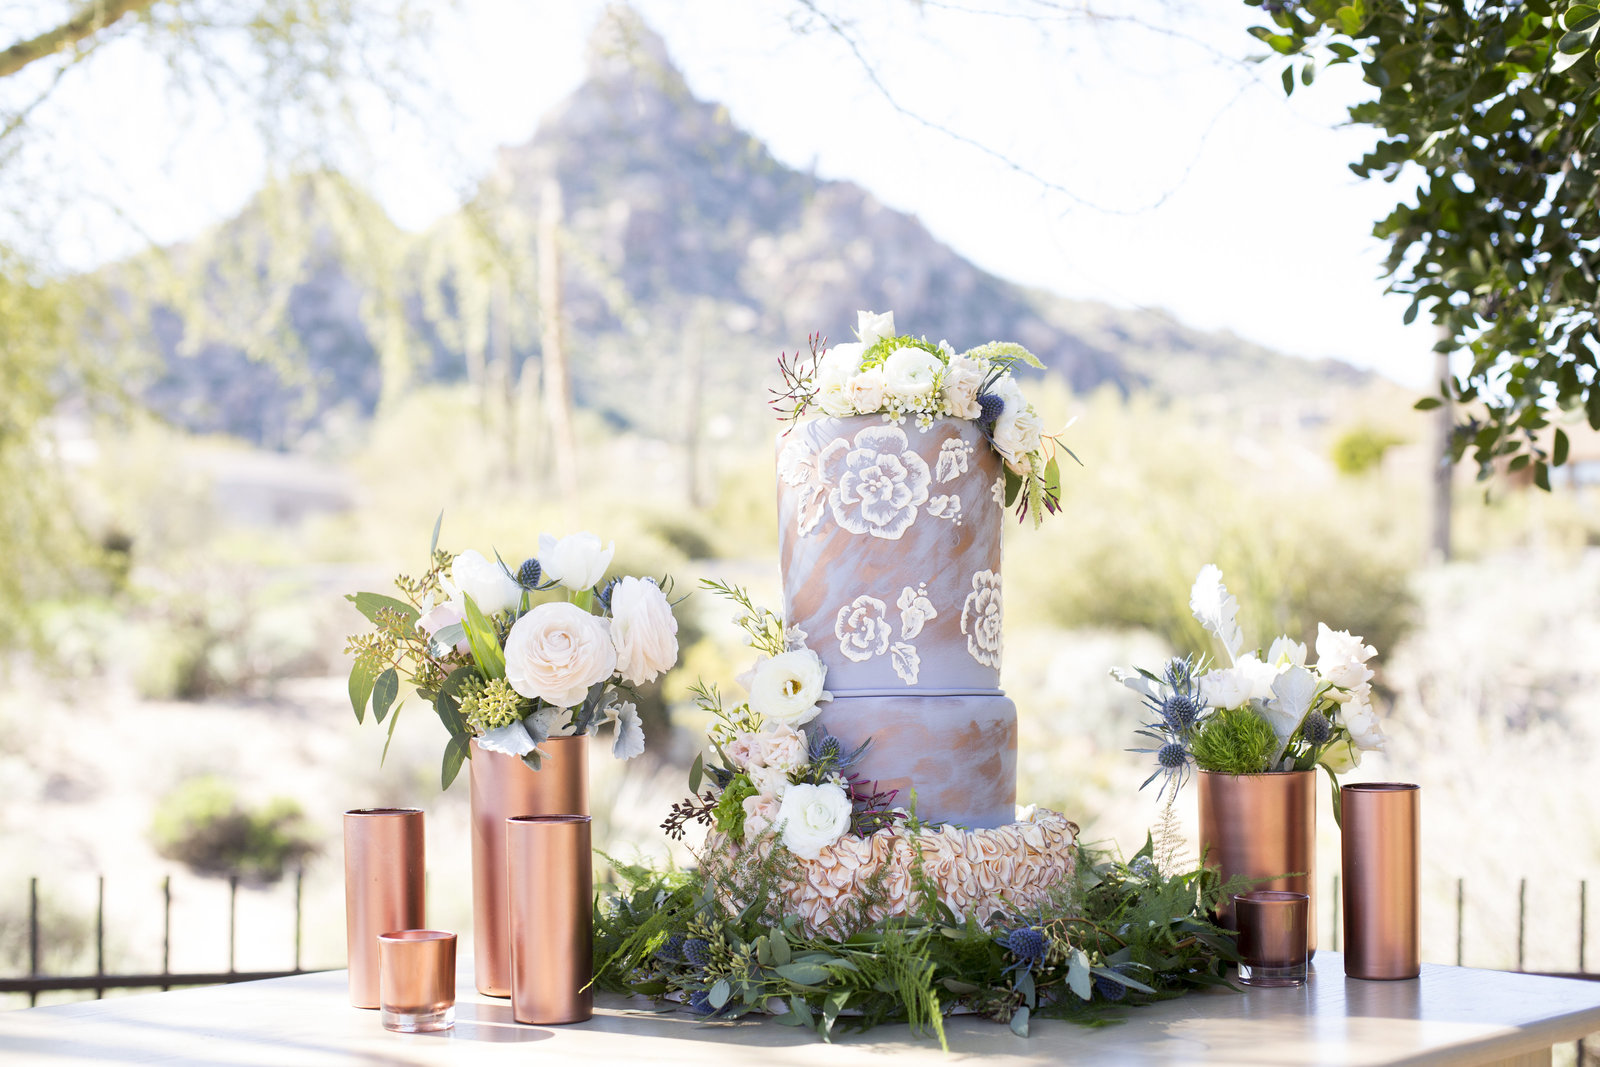 Your-Event-Florist-Arizona-Wedding-Flowers14